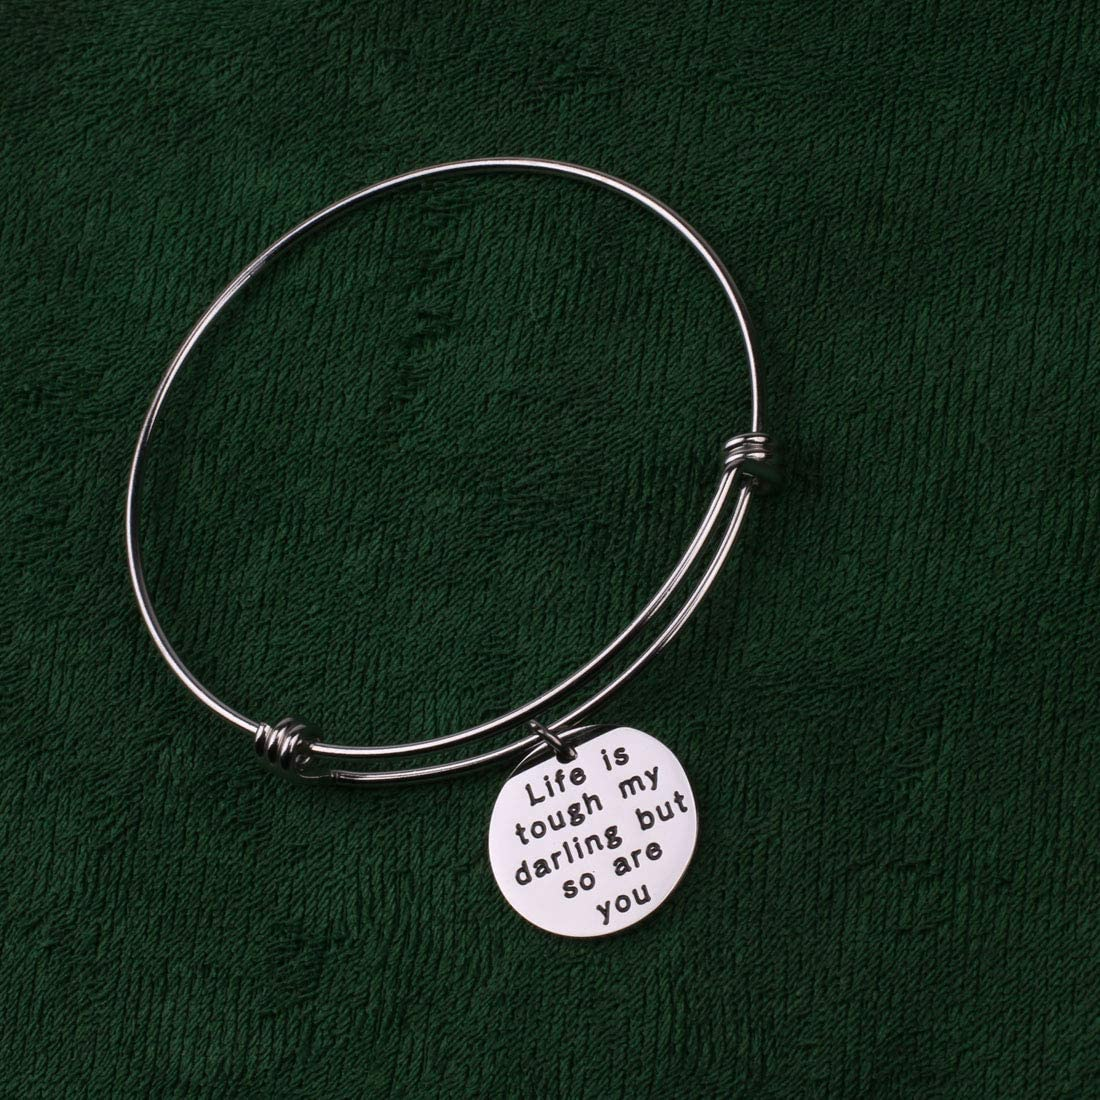 Anlive Life is Tough My Darling But So are You Encouragement Bracelet Illness Recovery Gift